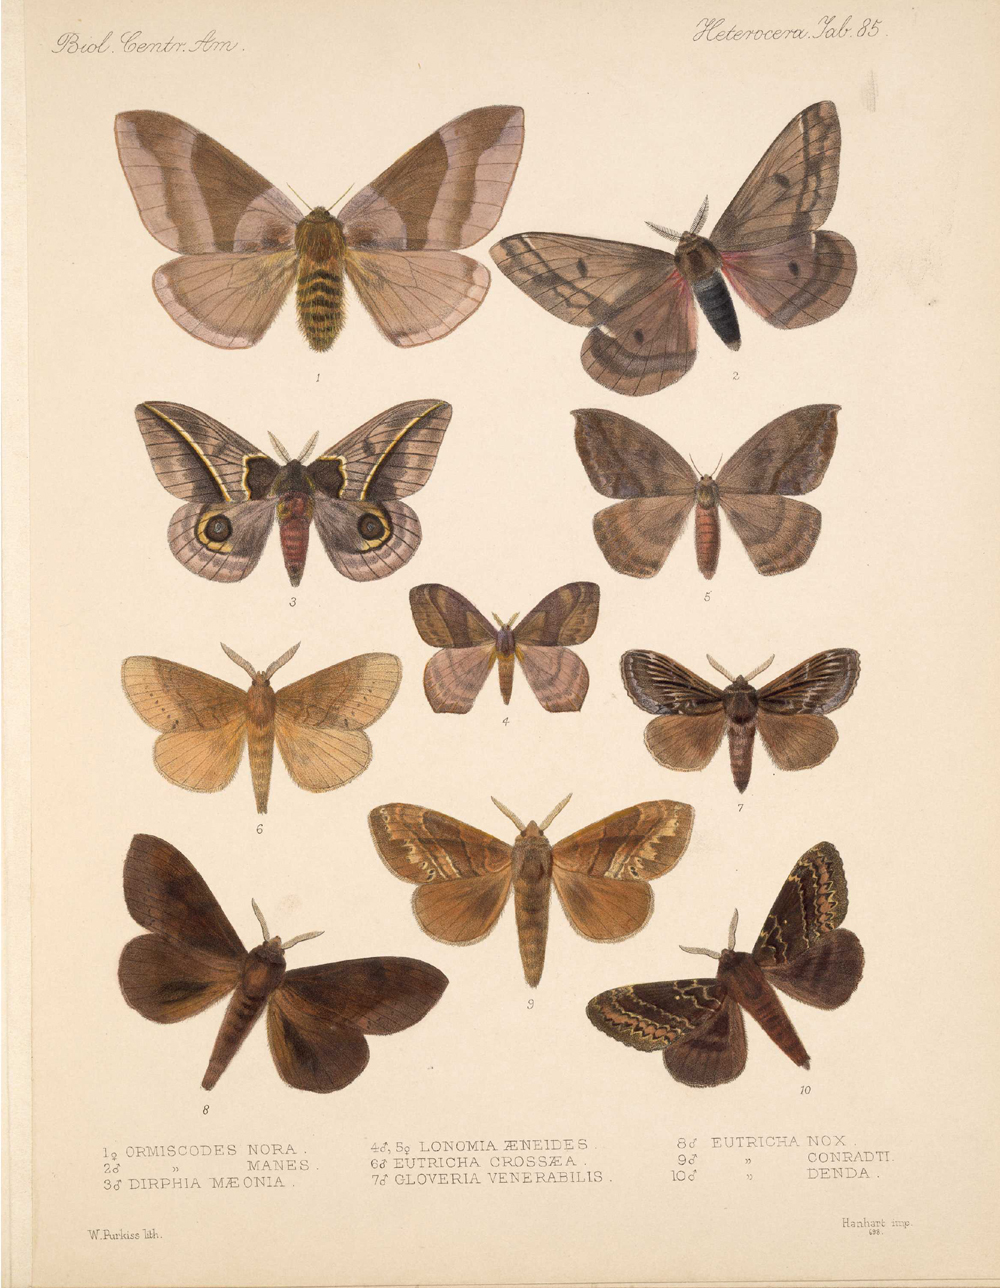 Butterflies and Moths,  Image number:bca_15_03_00_095